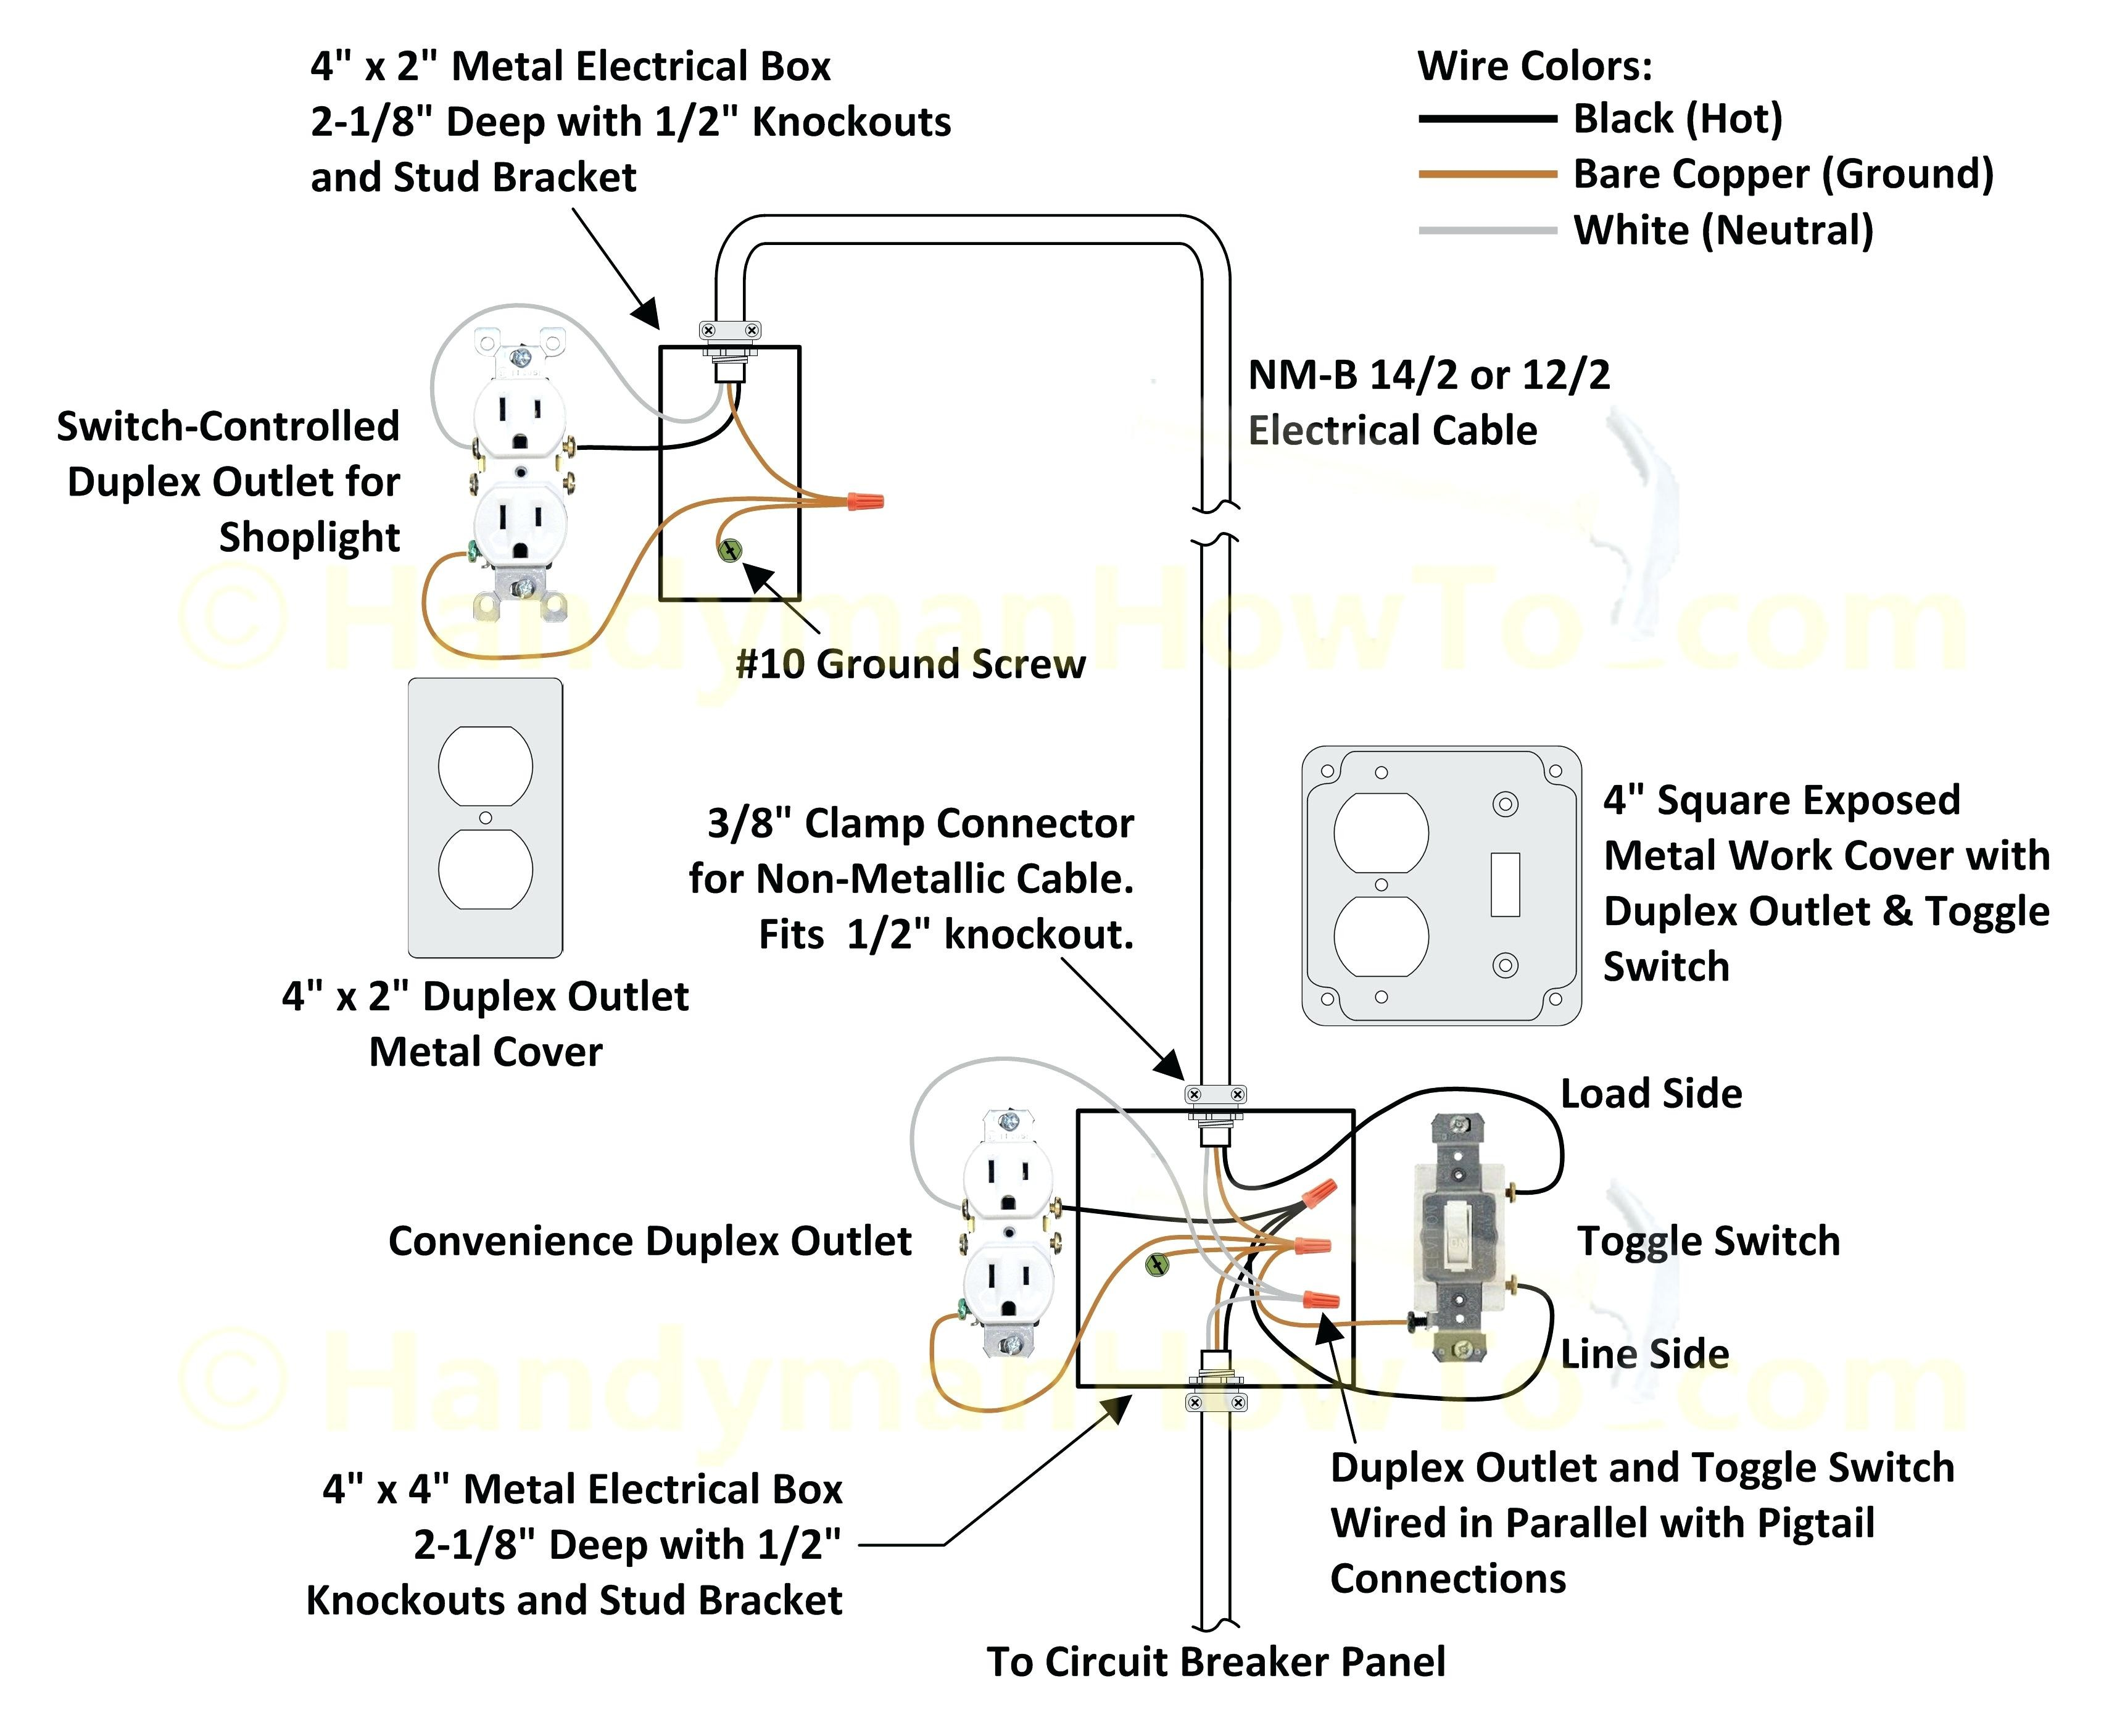 Gas Fireplace Fan Wiring Diagram Detailed Schematics Lennox Air Conditioner Free Download Attic Image Electricity Full Size Of Hunter